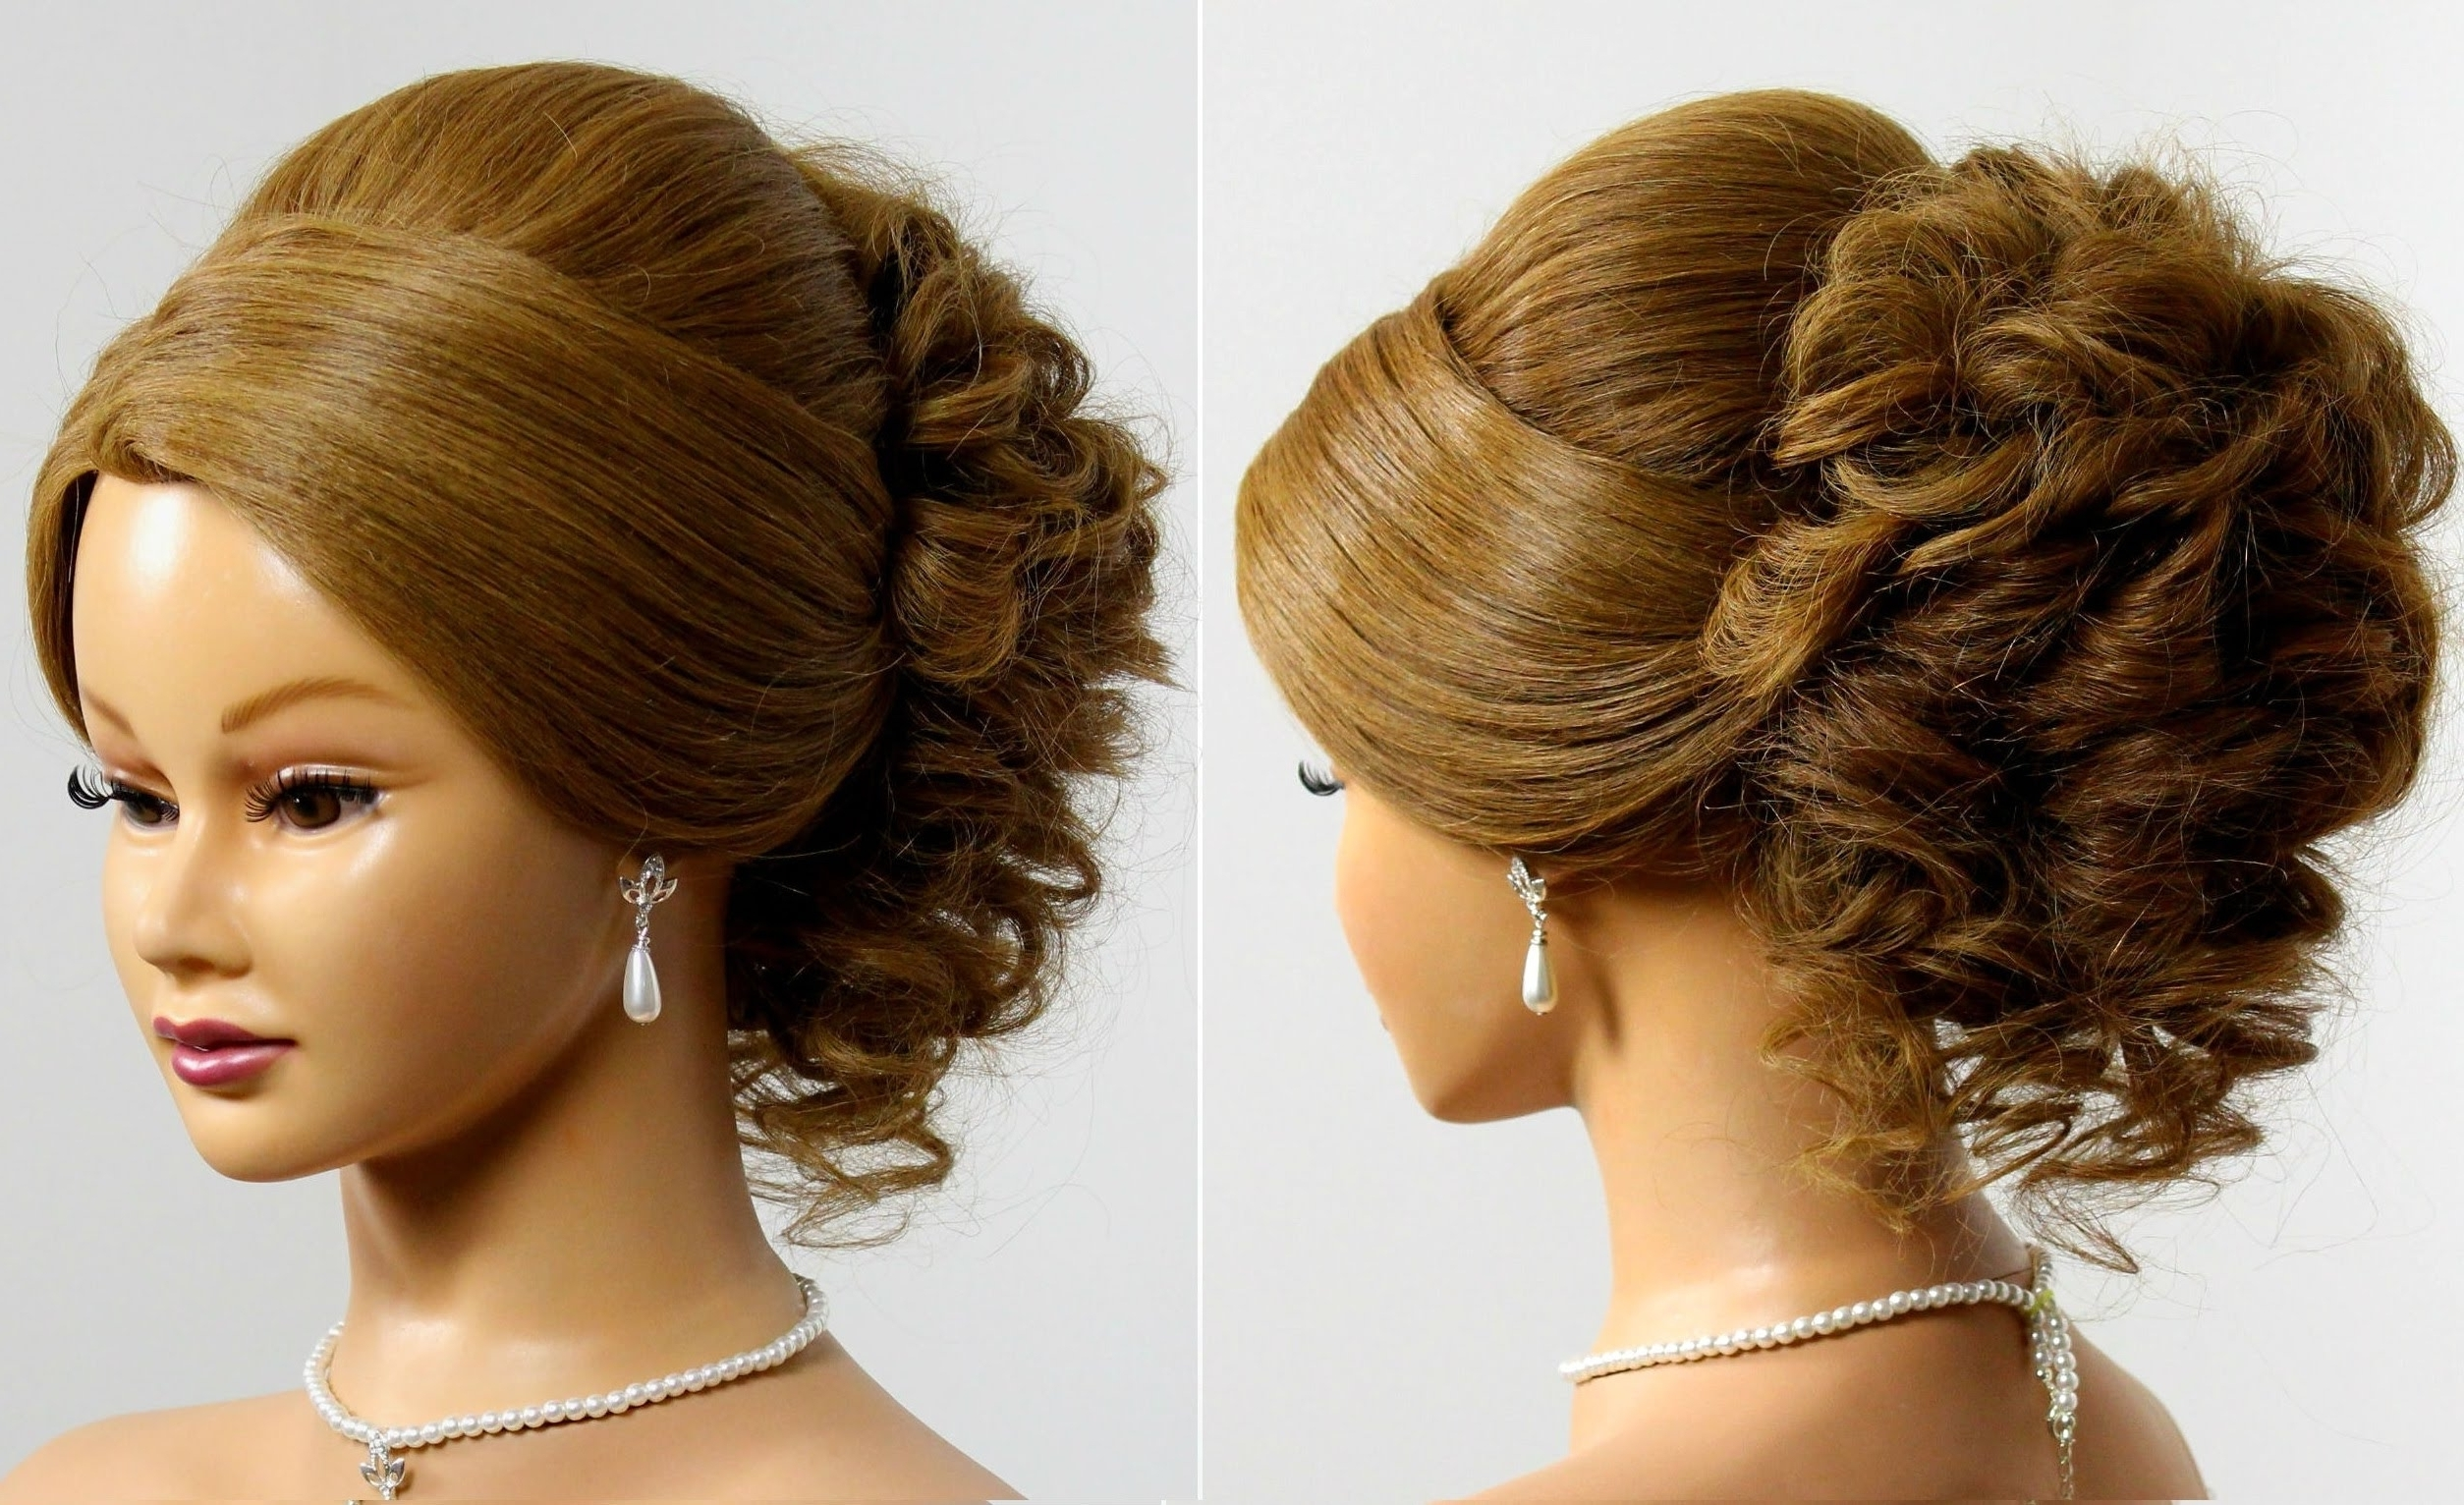 Fancy Updo Hairstyles For Long Hair Updo Hairstyles For Medium Hair Within Fancy Updo Hairstyles (View 2 of 15)